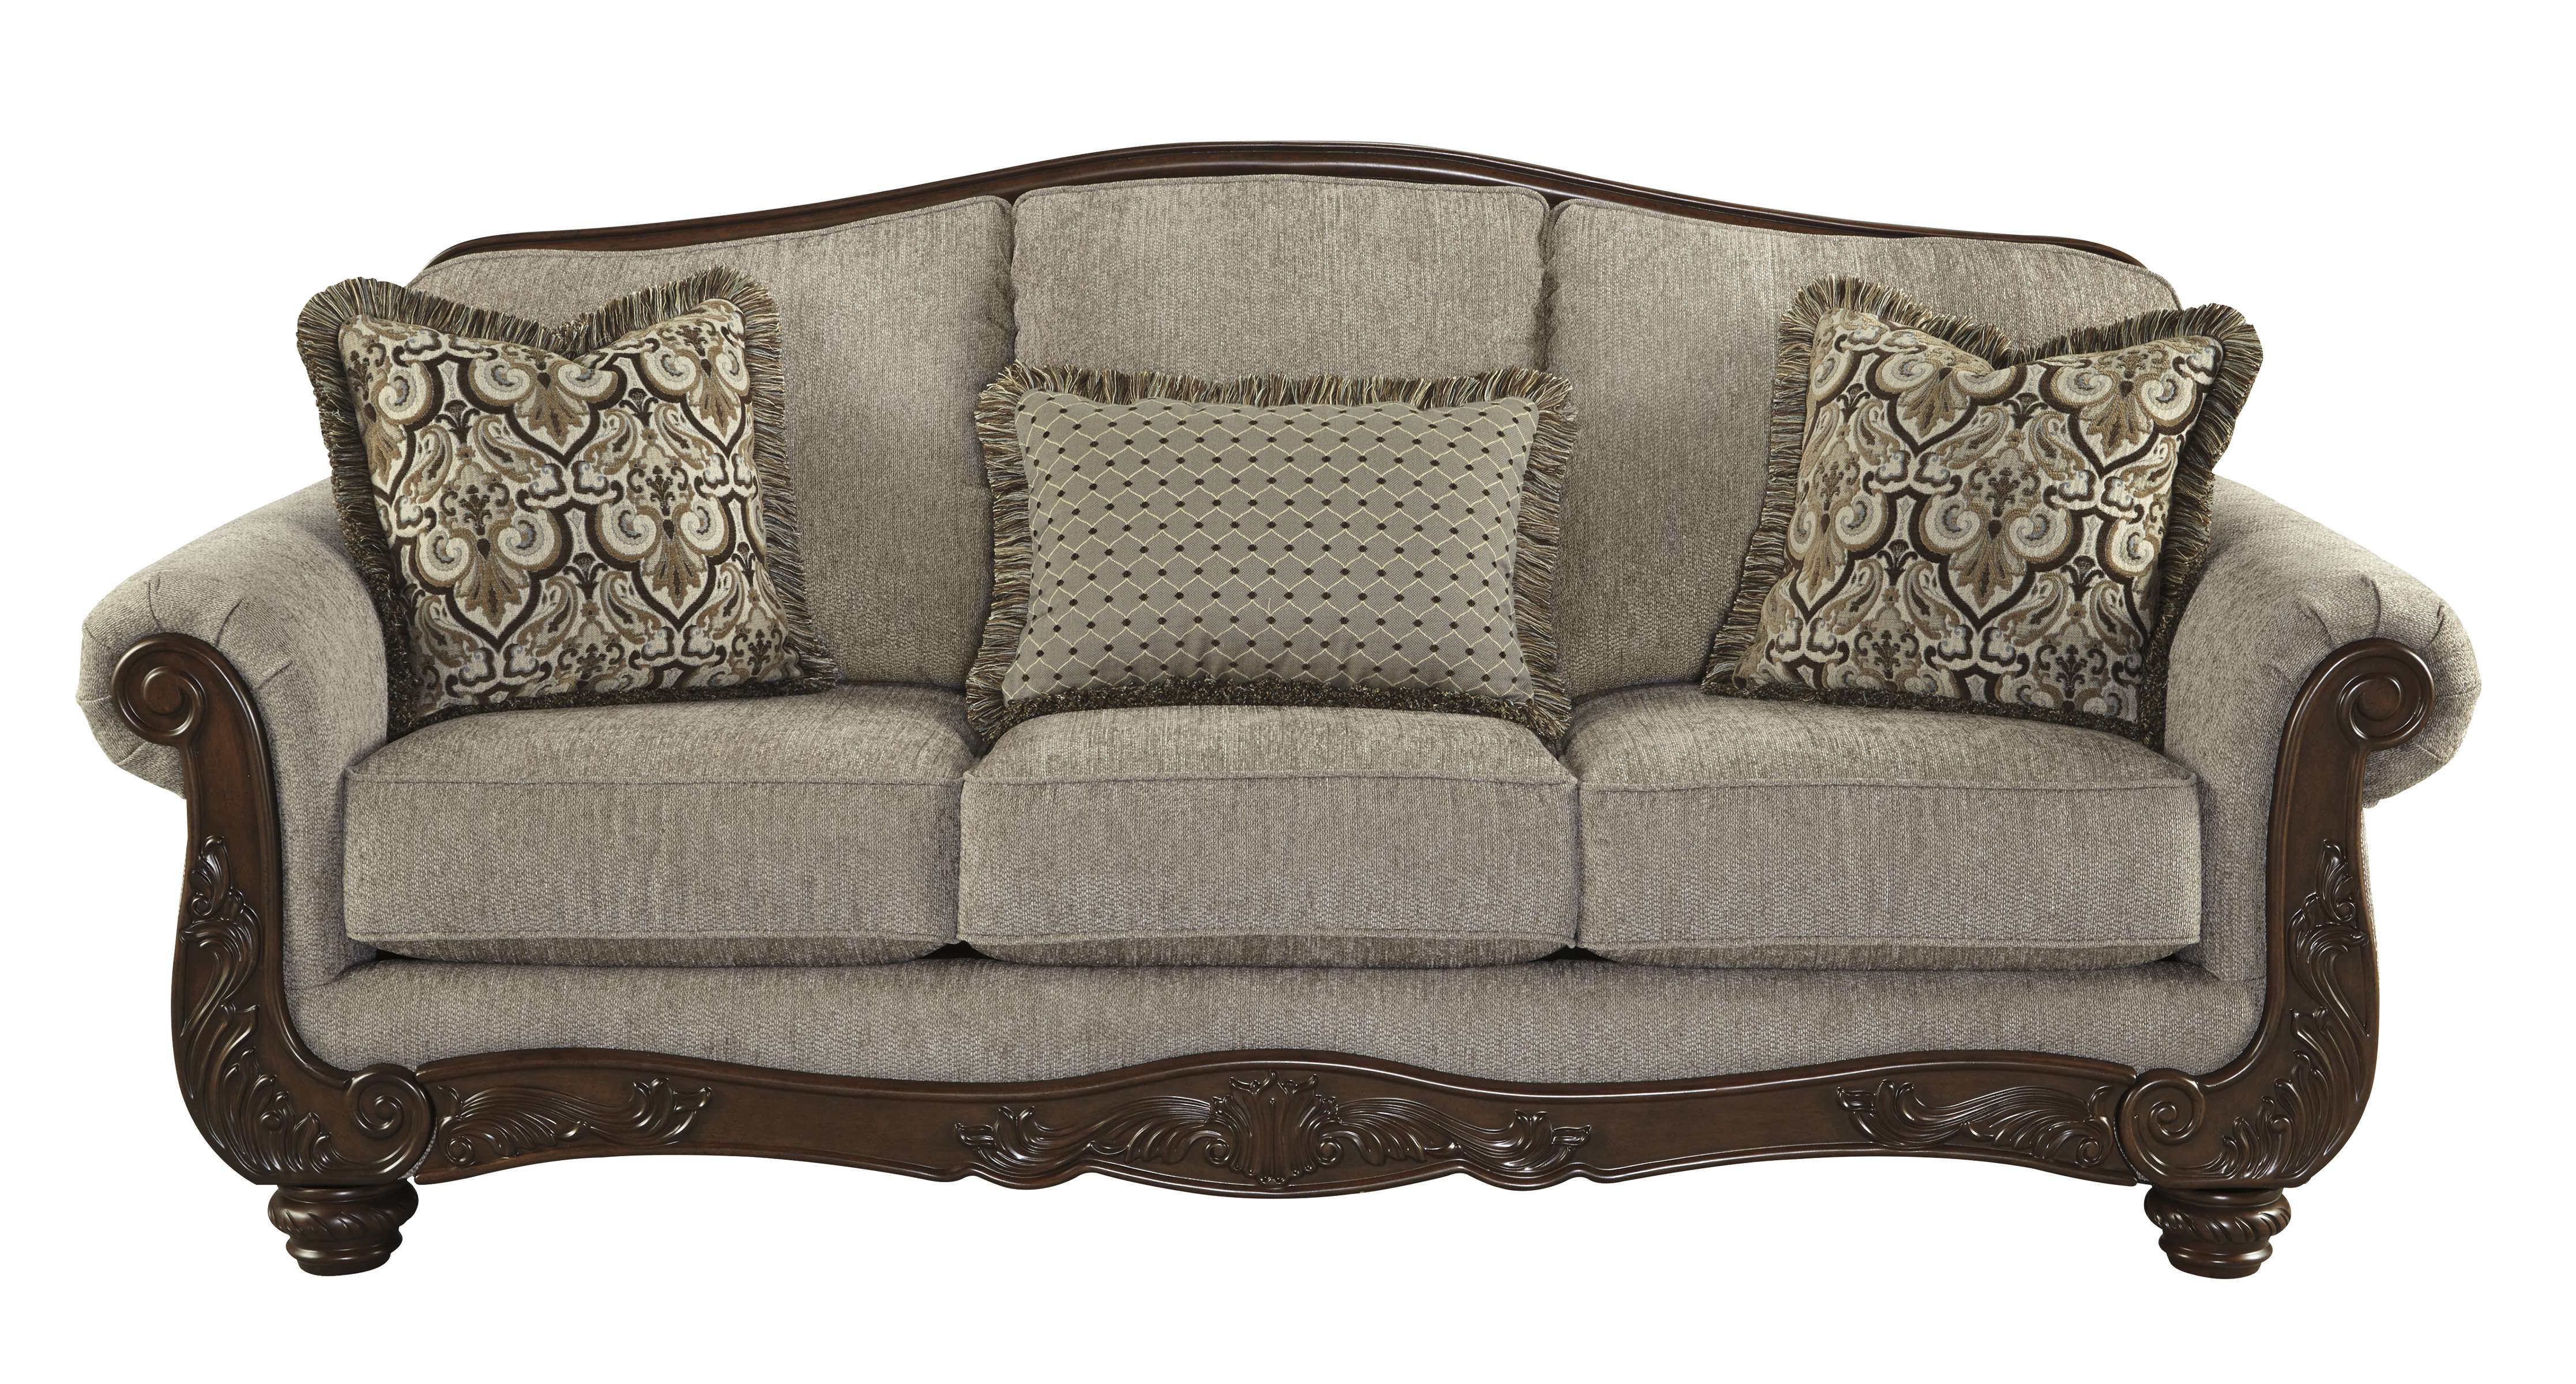 Lowest Price On Signature Design By Ashley Cecilyn Cocoa Sofa